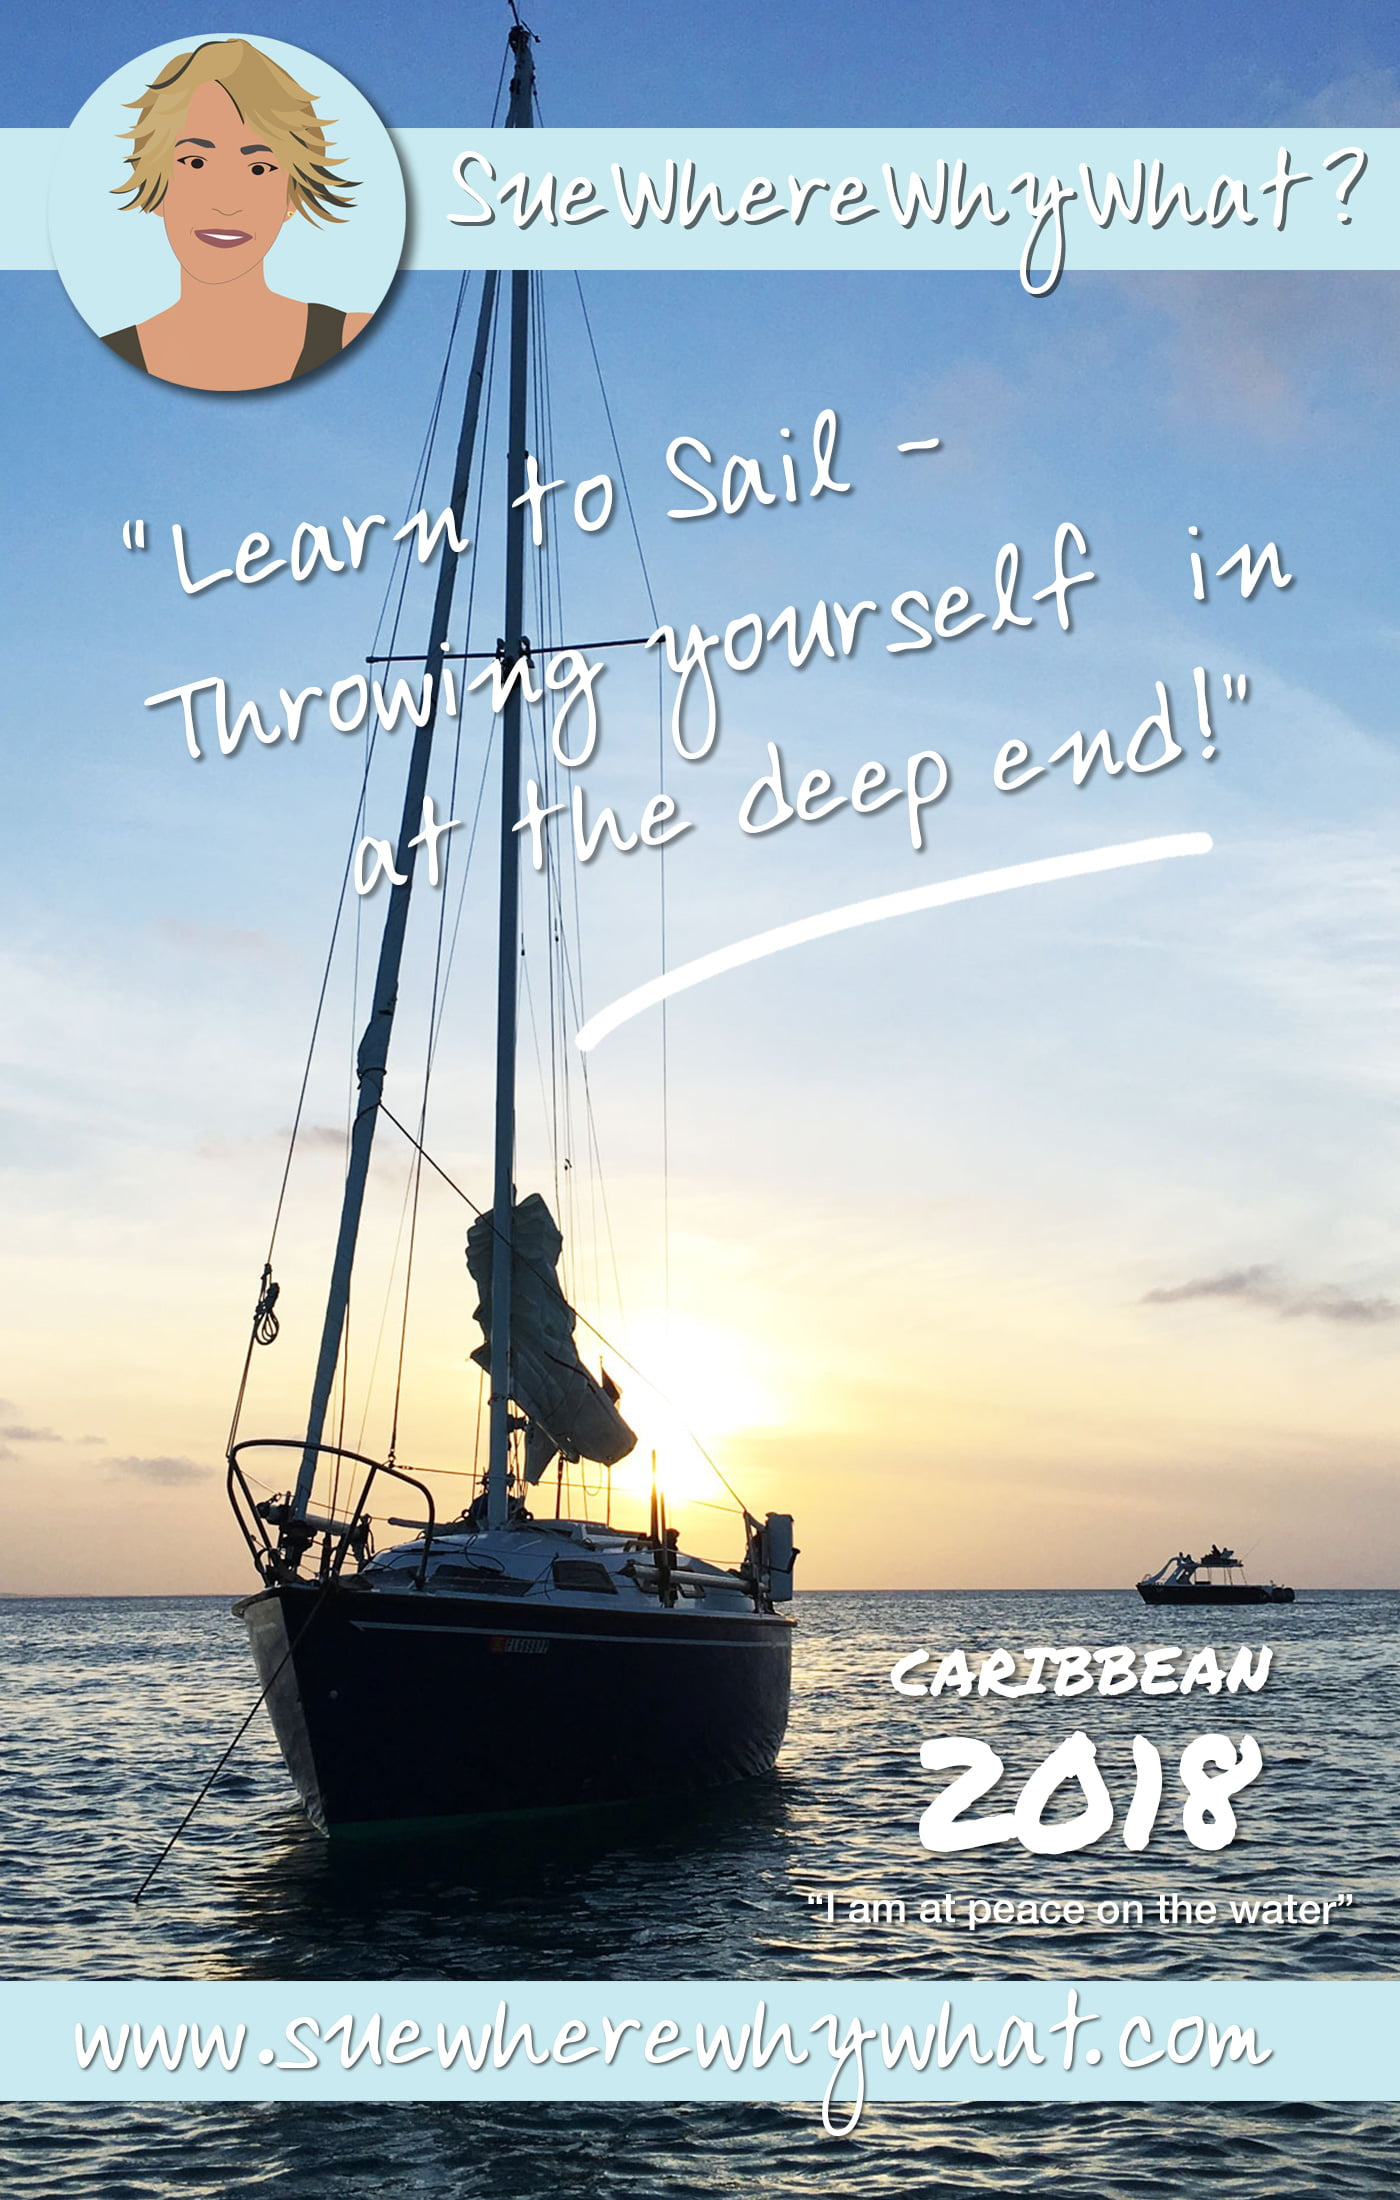 My top tips on how to (not!) learn to sail. Sharing my experiences from UK, Turks & Caicos Islands, Bahamas & beyond.  https://www.suewherewhywhat.com/destinations/central-america-and-caribbean/throw-deep-end-learning-sail